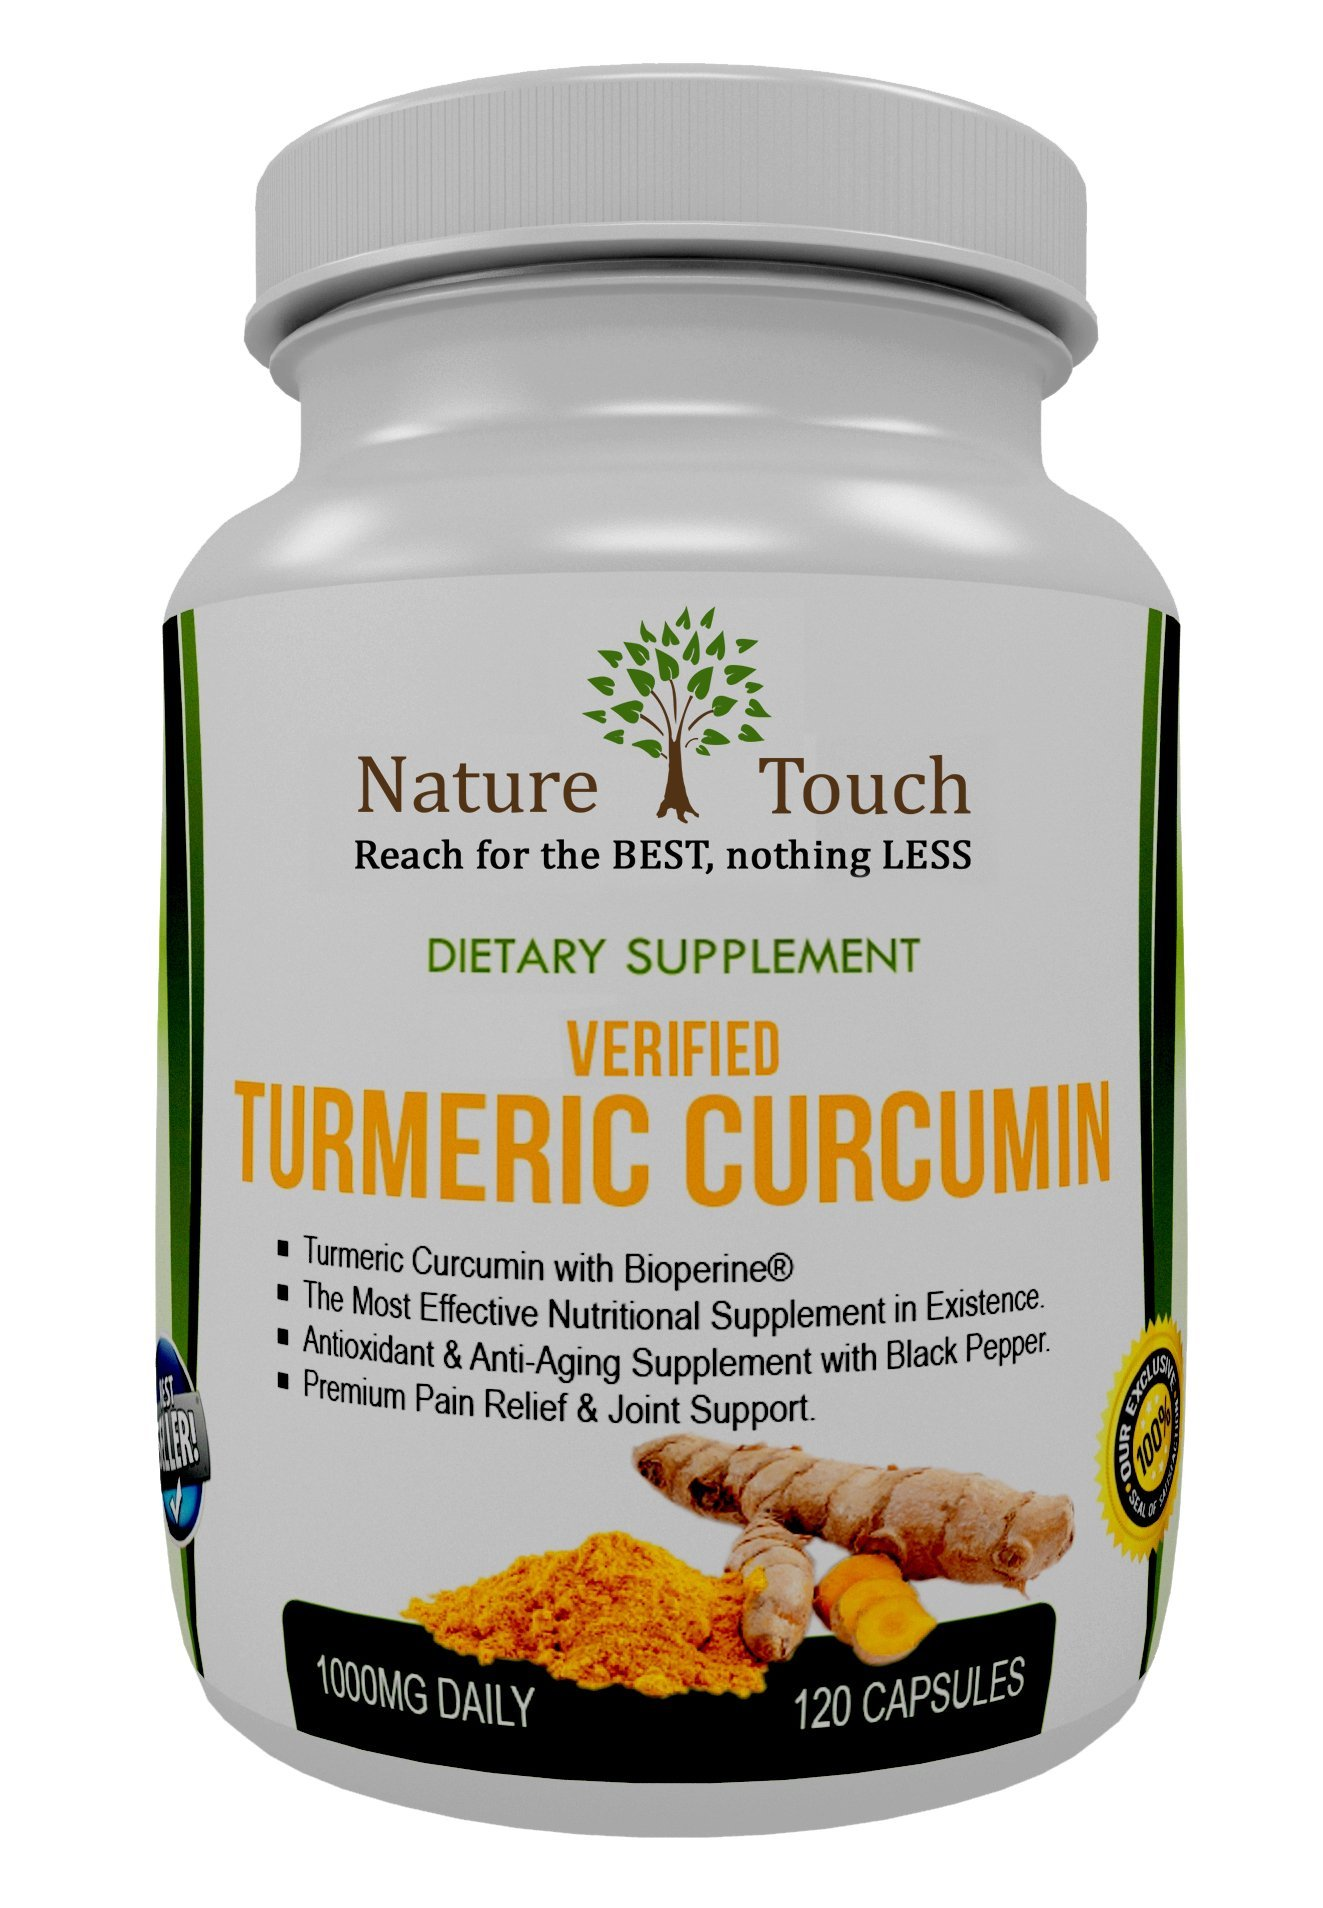 Research Verified Turmeric Curcumin Capsules- Curcuma Capsules- Best for Pain Relief With Bioperine. Tumeric Powder Extract Supplement 1000 Mg With Black Pepper (Piperine). Tumeric Supplements